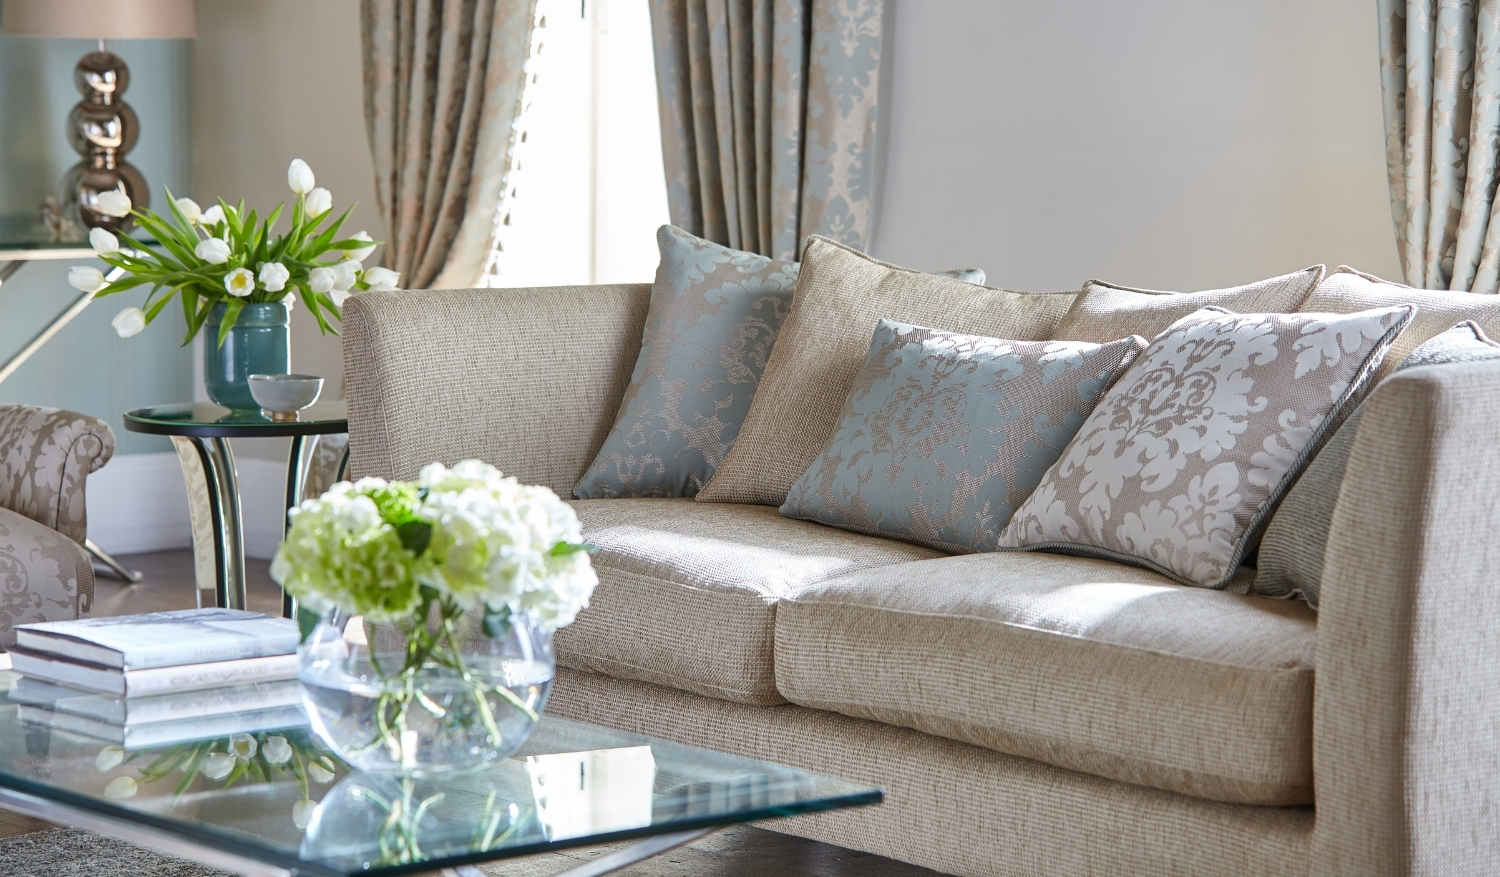 A real estate virtual tour of a tastefully decorated living room